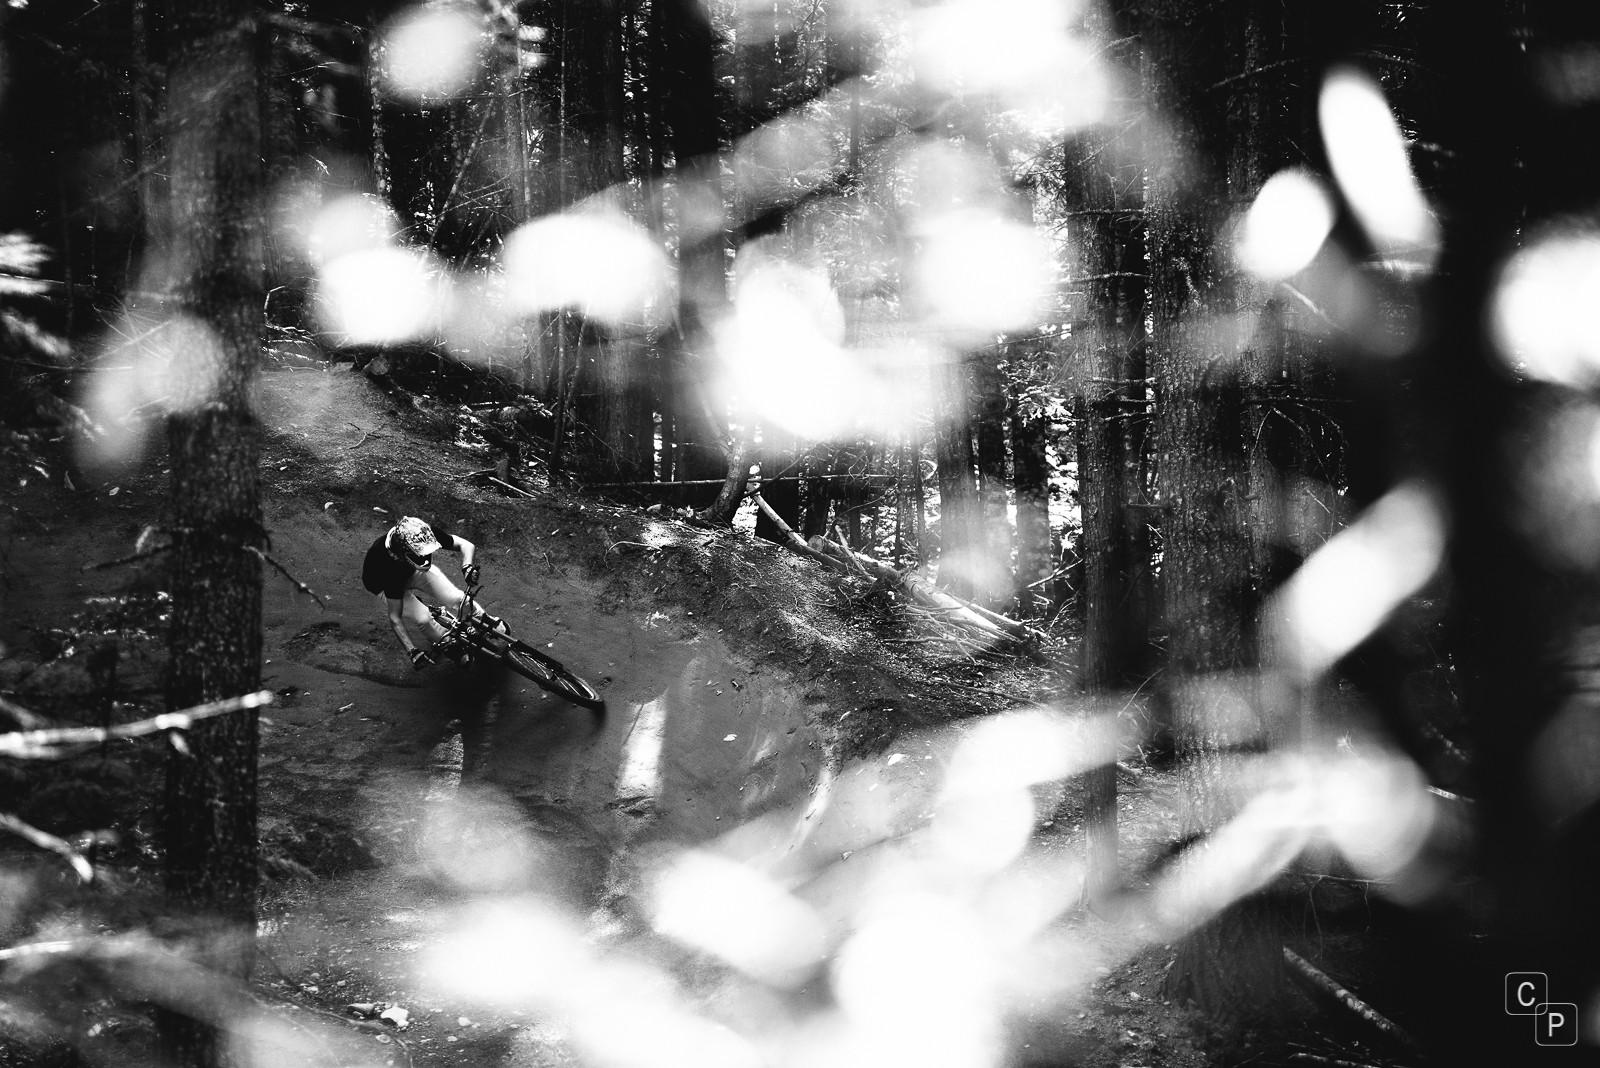 A place in time on Aline - chrispilling - Mountain Biking Pictures - Vital MTB